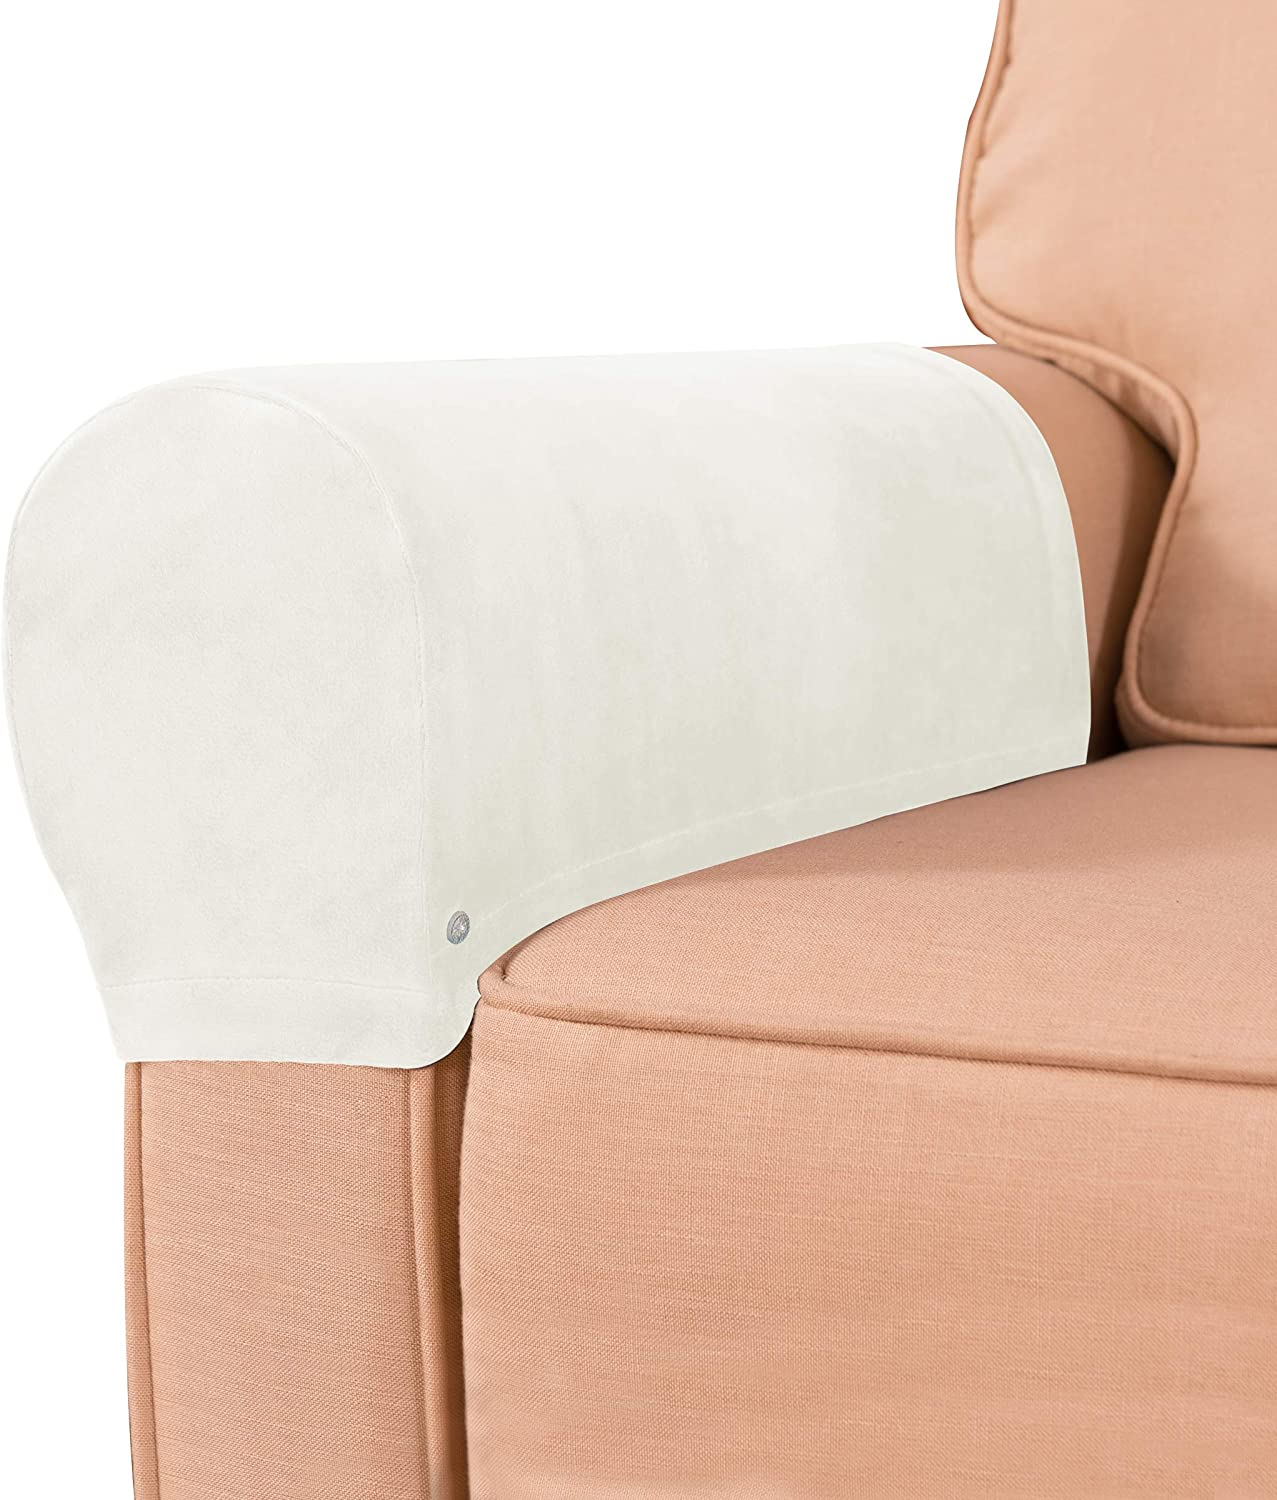 subrtex Velvet Armchair Covers Spandex Stretch Armrest Covers Couch Furniture Protector Armchair Slipcovers for Sofa with Free Twist Pins(White,2pcs)